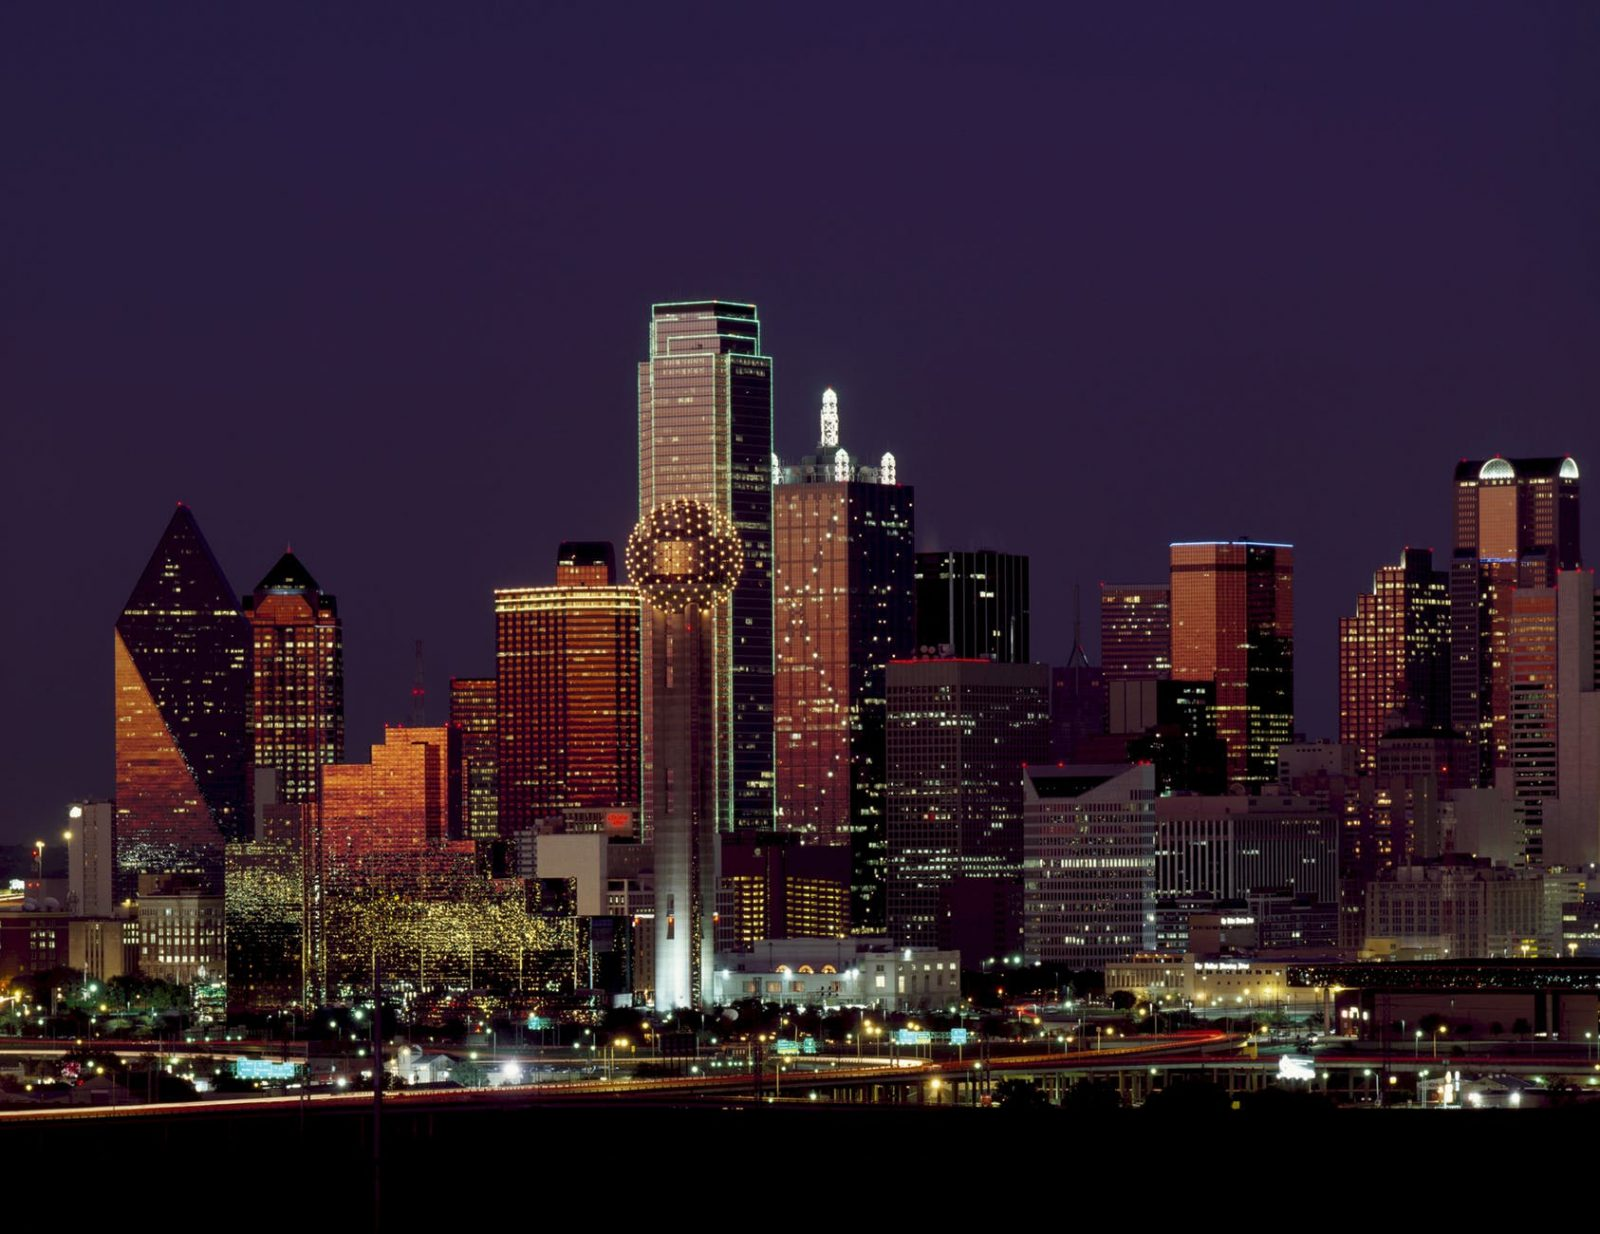 Flight Deal Round Trip From Los Angeles Area to Dallas Area #losangeles #dallas #1week